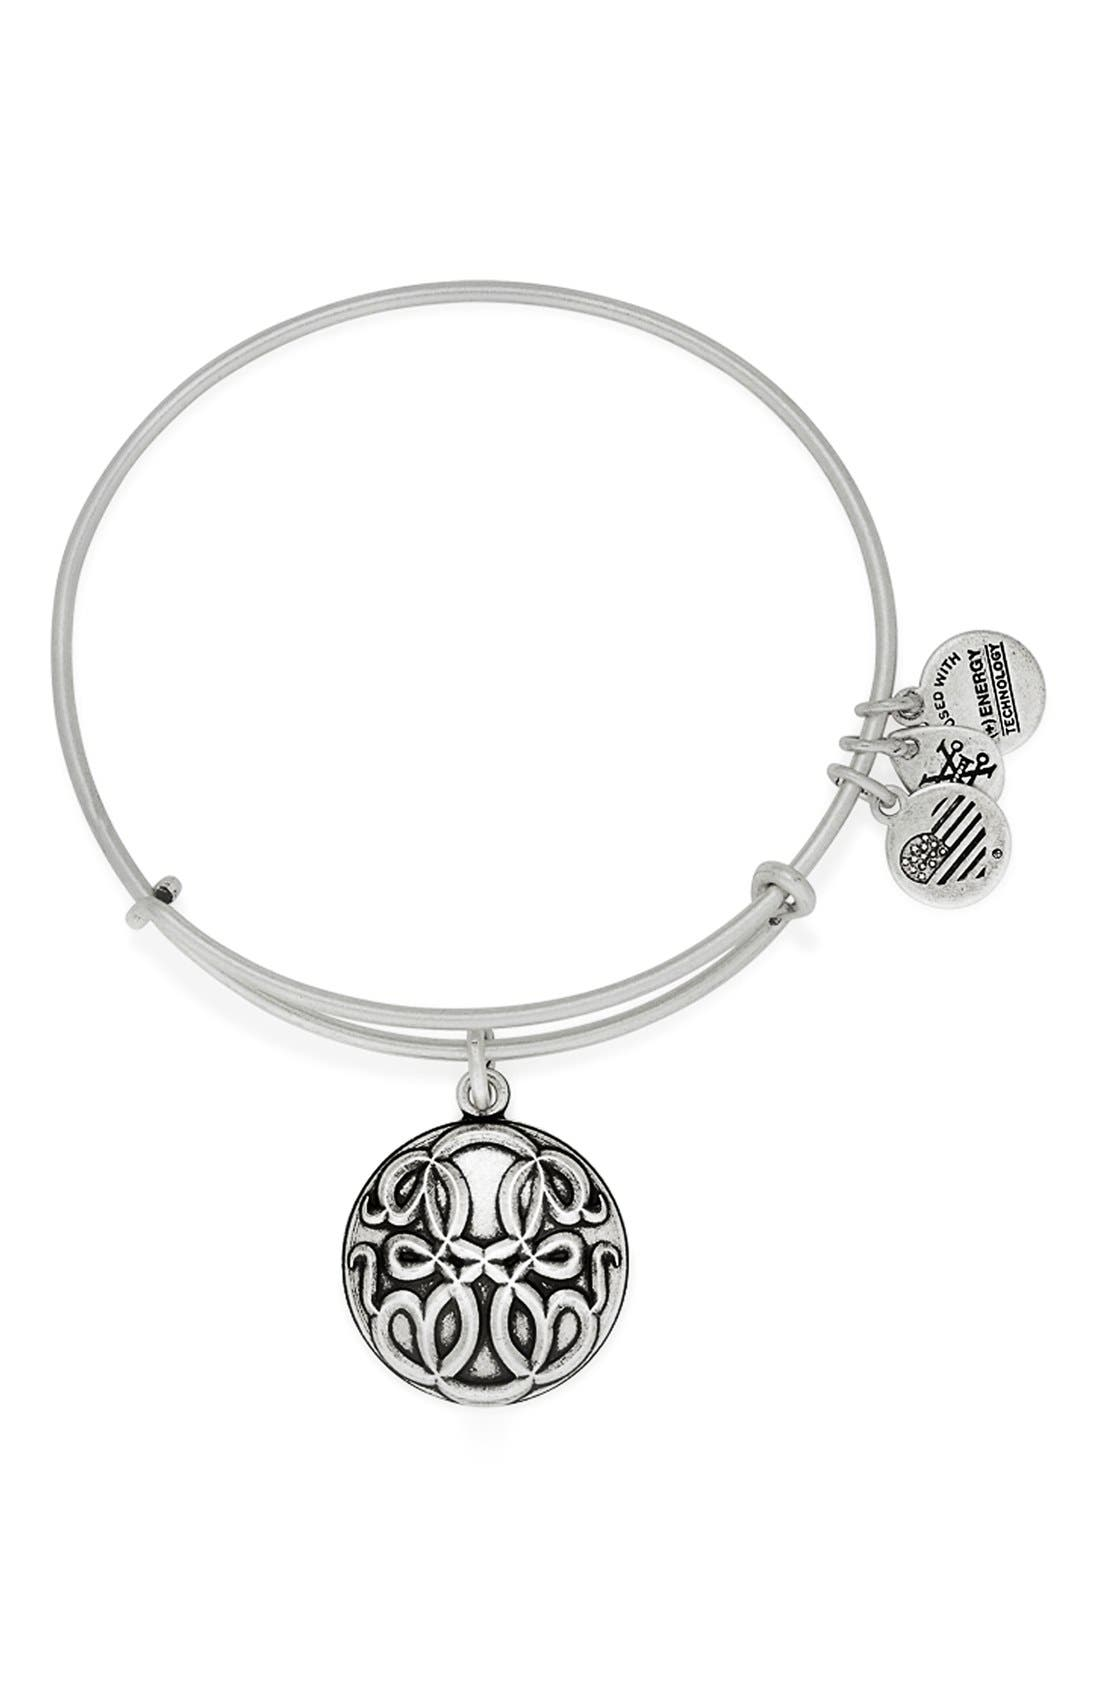 Alternate Image 1 Selected - Alex and Ani 'Path of Life' Charm Bracelet